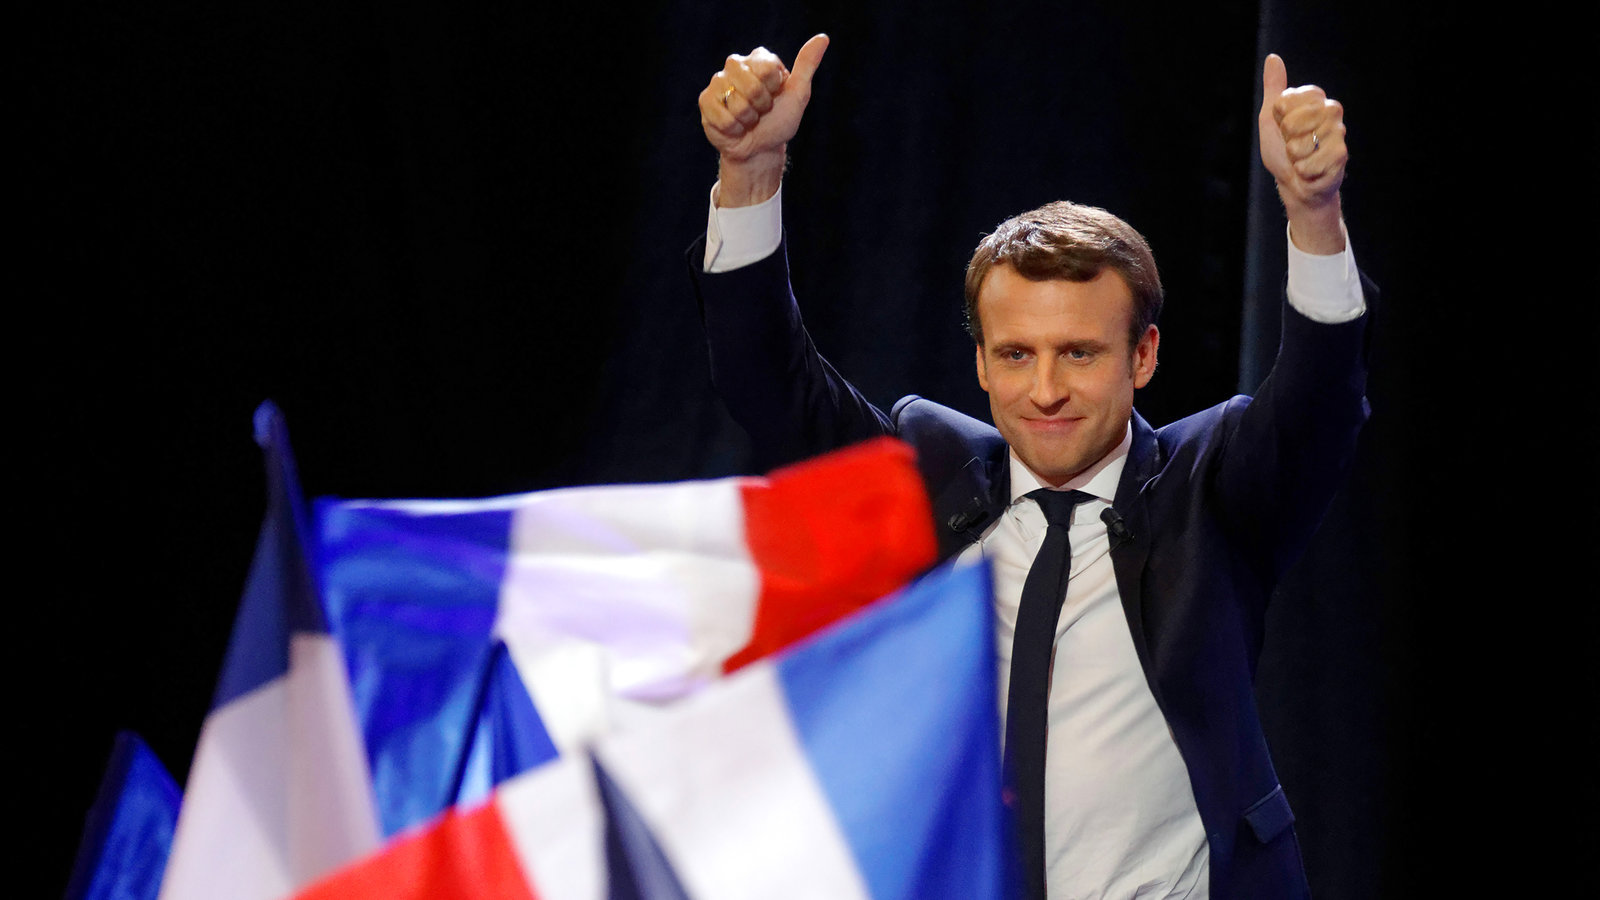 https://www.nytimes.com/watching/titles/emmanuel-macron-behind-the-rise